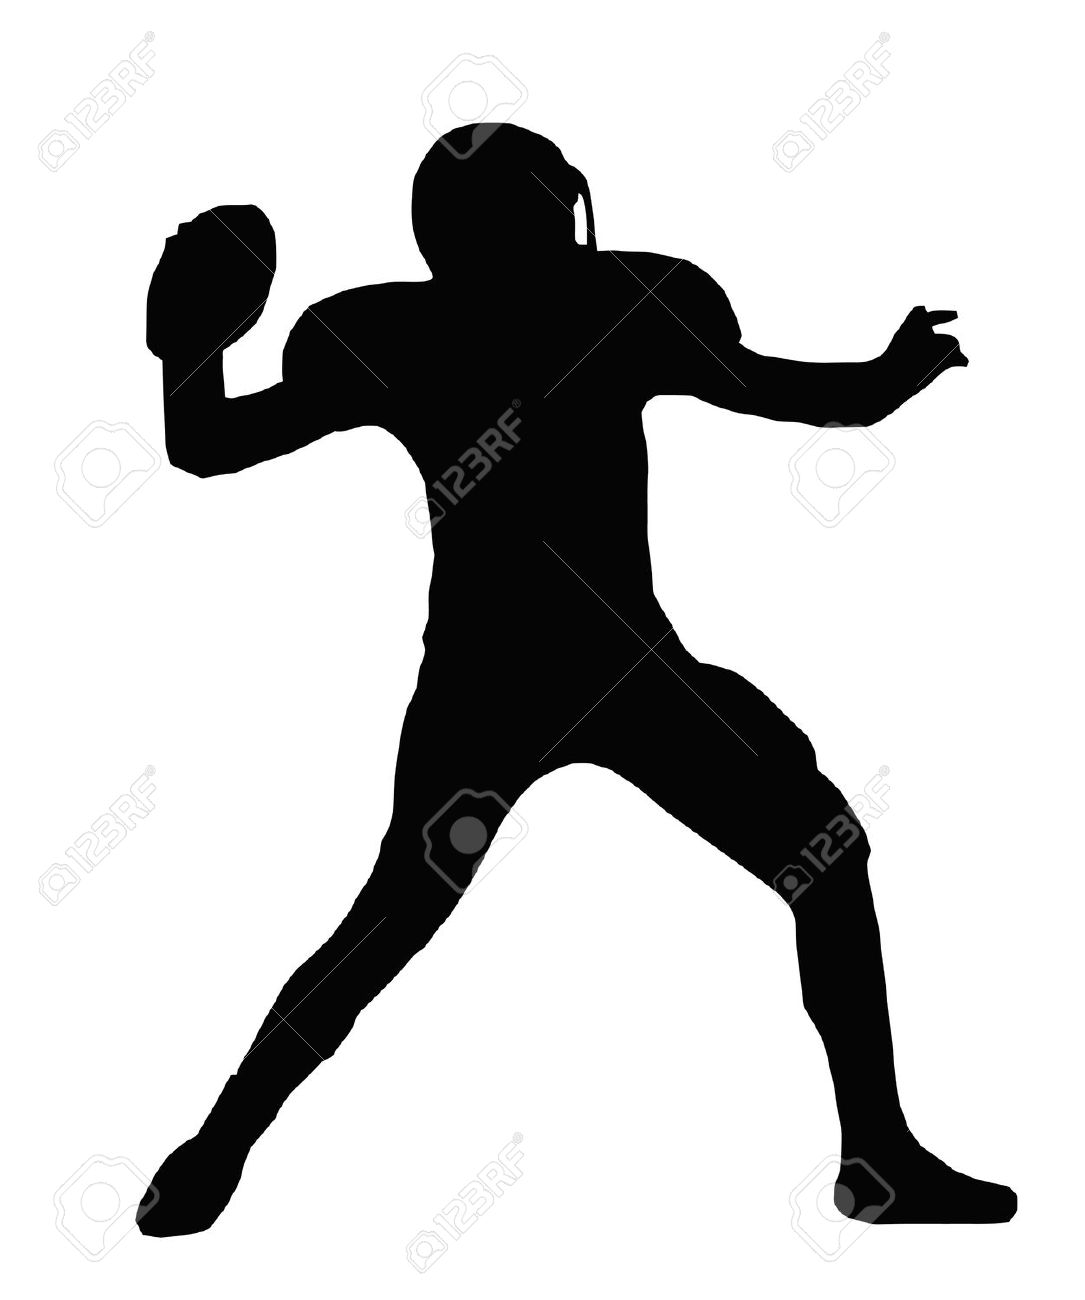 1085x1300 Footballer Silhouette Png Transparent Clip Simple Wiring